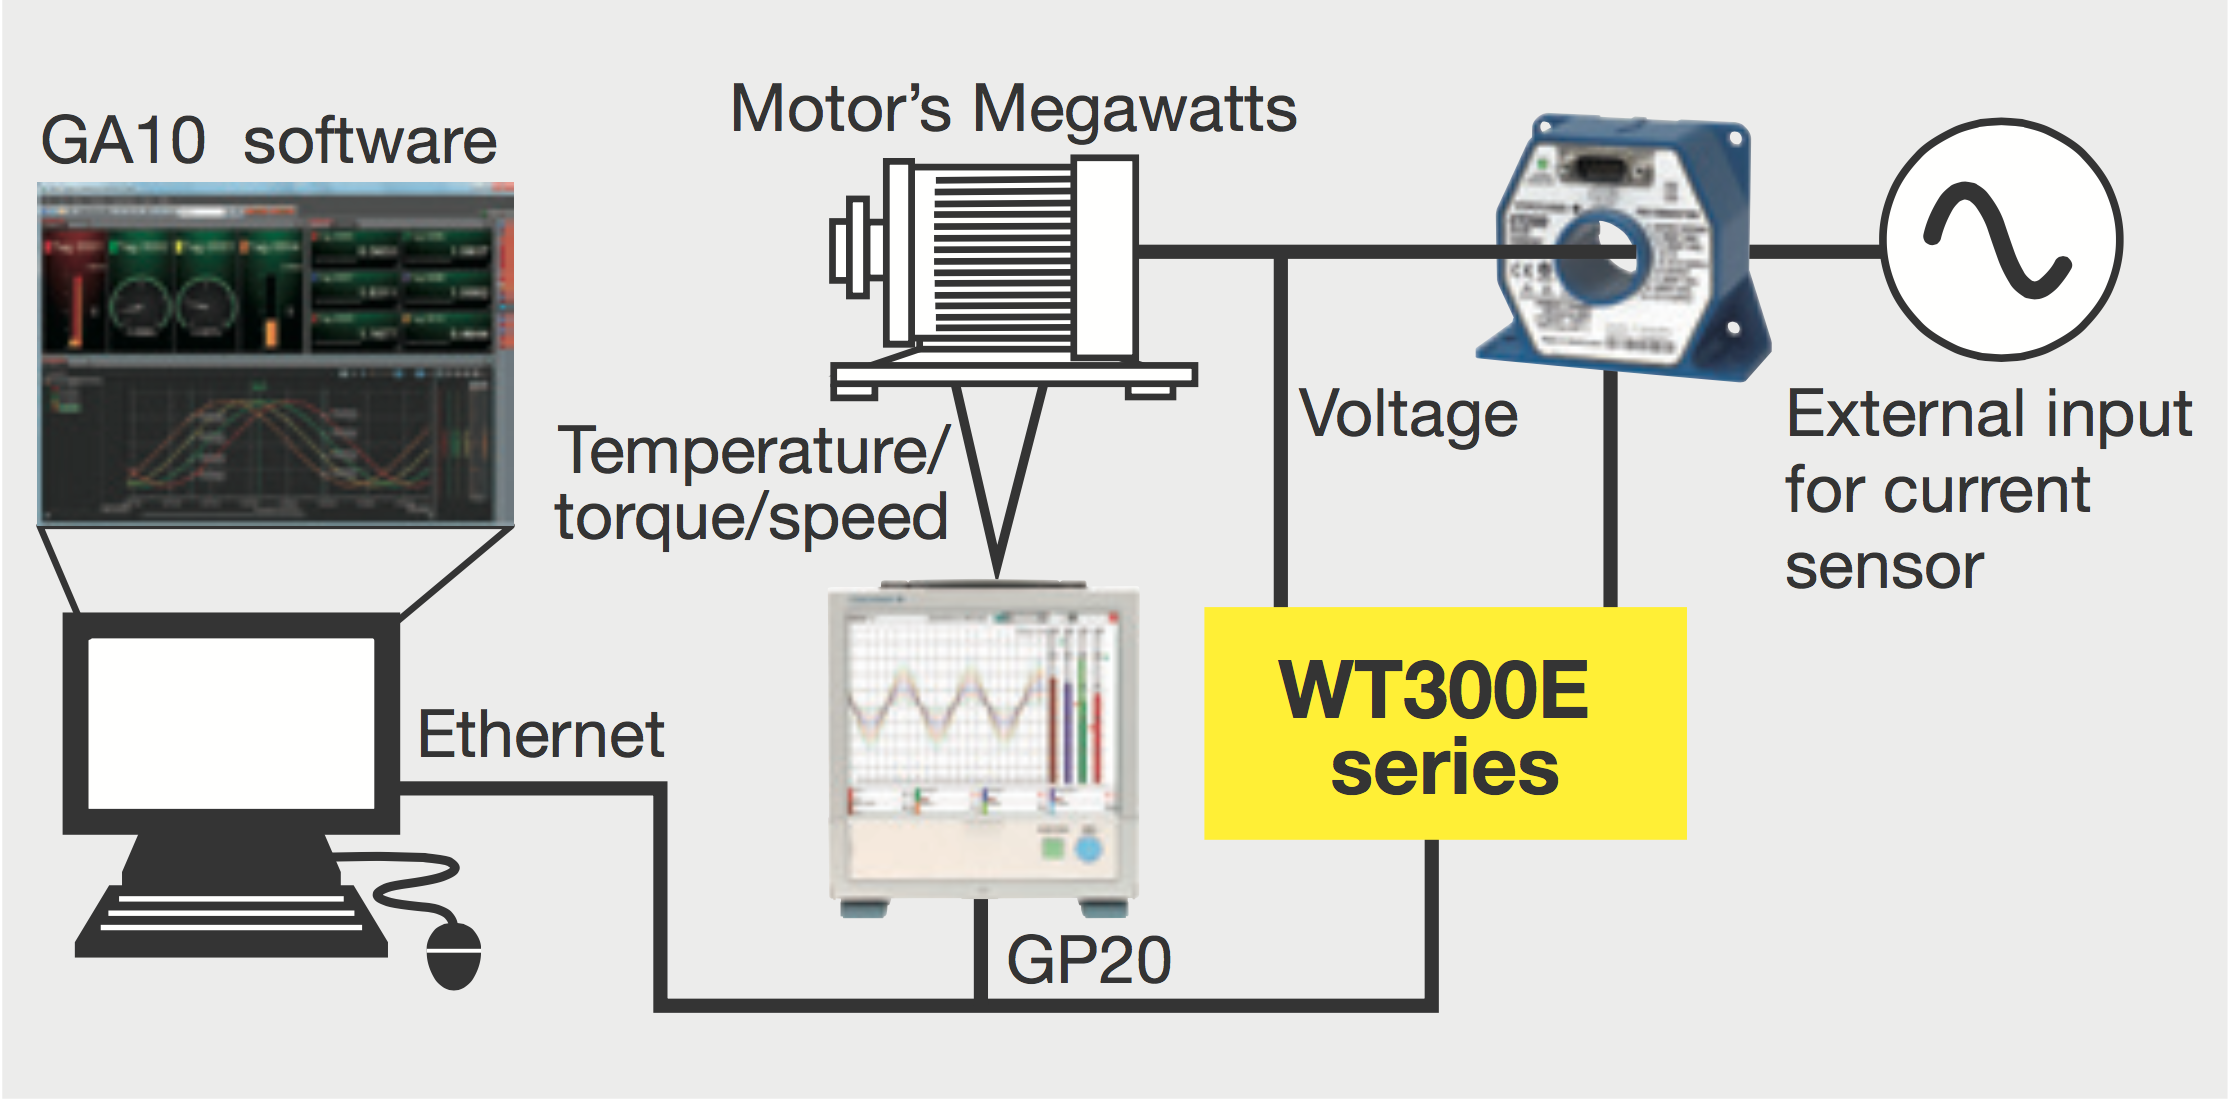 Wt300e Economy Yokogawa Test Measurement Corporation Auto Transformer Wiring Diagram On 1000v Motor 13 Durantion Testing 1